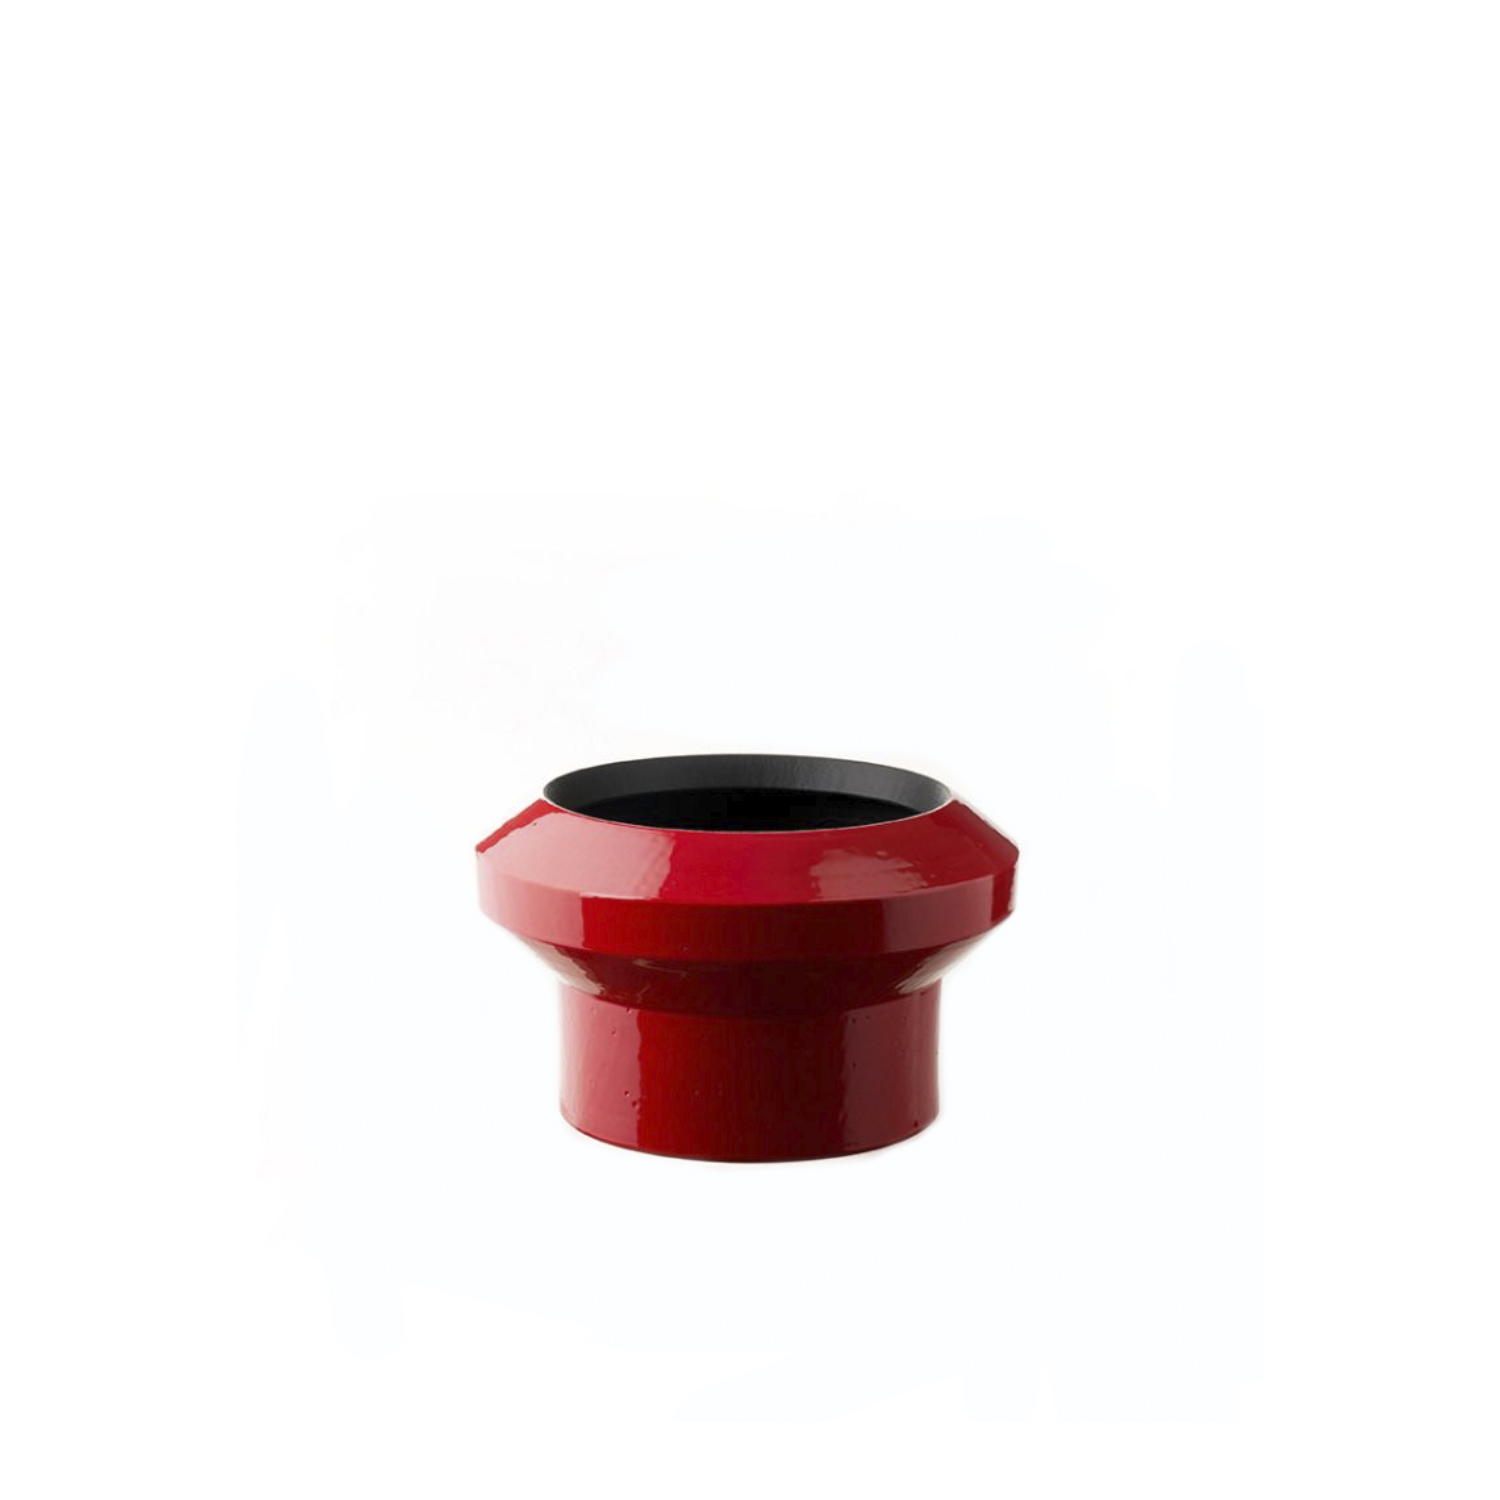 Small Red Centrepiece - Elegant and expressive, this stylized ceramic centerpiece was turned on a lathe of white refractory clay with a cylindrical base supporting a bowl-shaped top. A two-tone finish enriches the piece, with bright glossy red on the outside and matte black inside, visible through the wide top opening, that exudes highly decorative quality and striking allure. Perfect in a modern, monochromatic interior, this limited-series centerpiece from the Tribe Collection is available in a limited series of 99 pieces. | Matter of Stuff